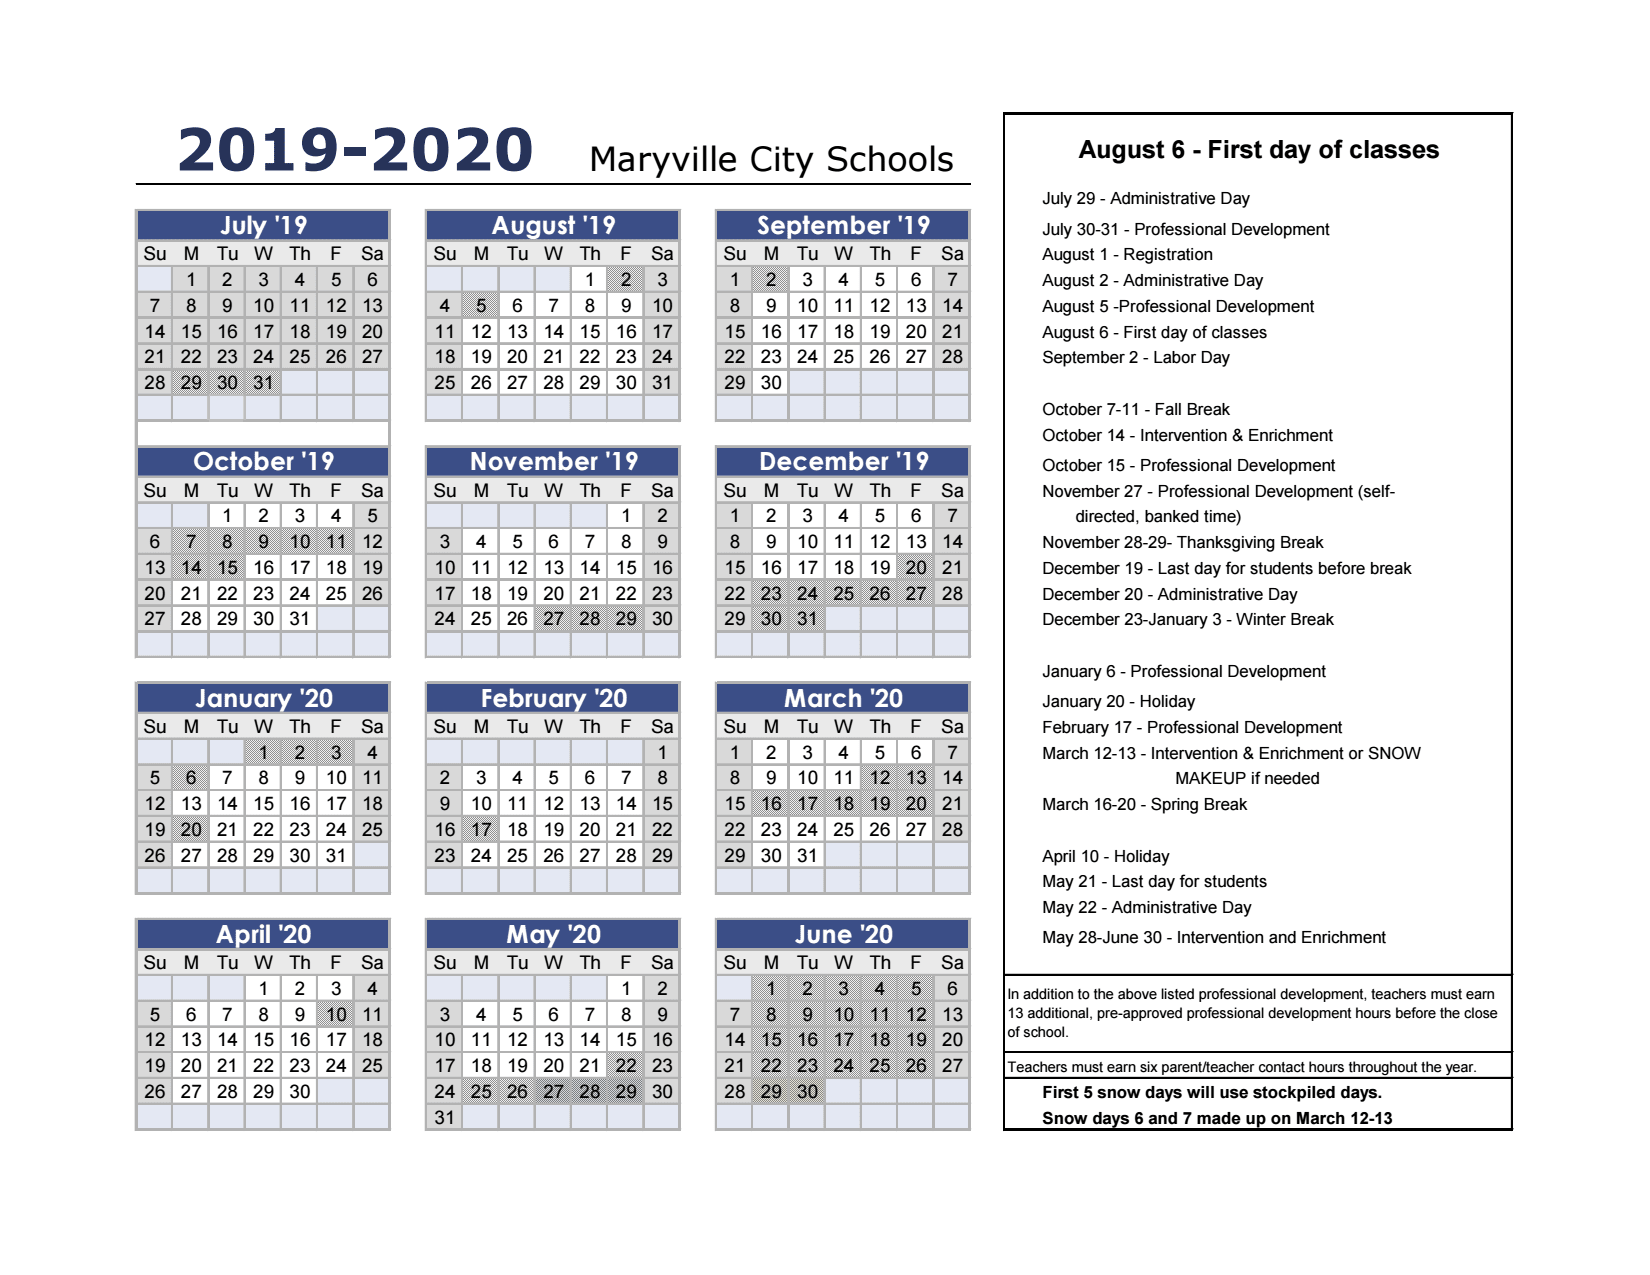 Houston County School Calendar.2019 20 Calendar Print Ready Maryville City Schools